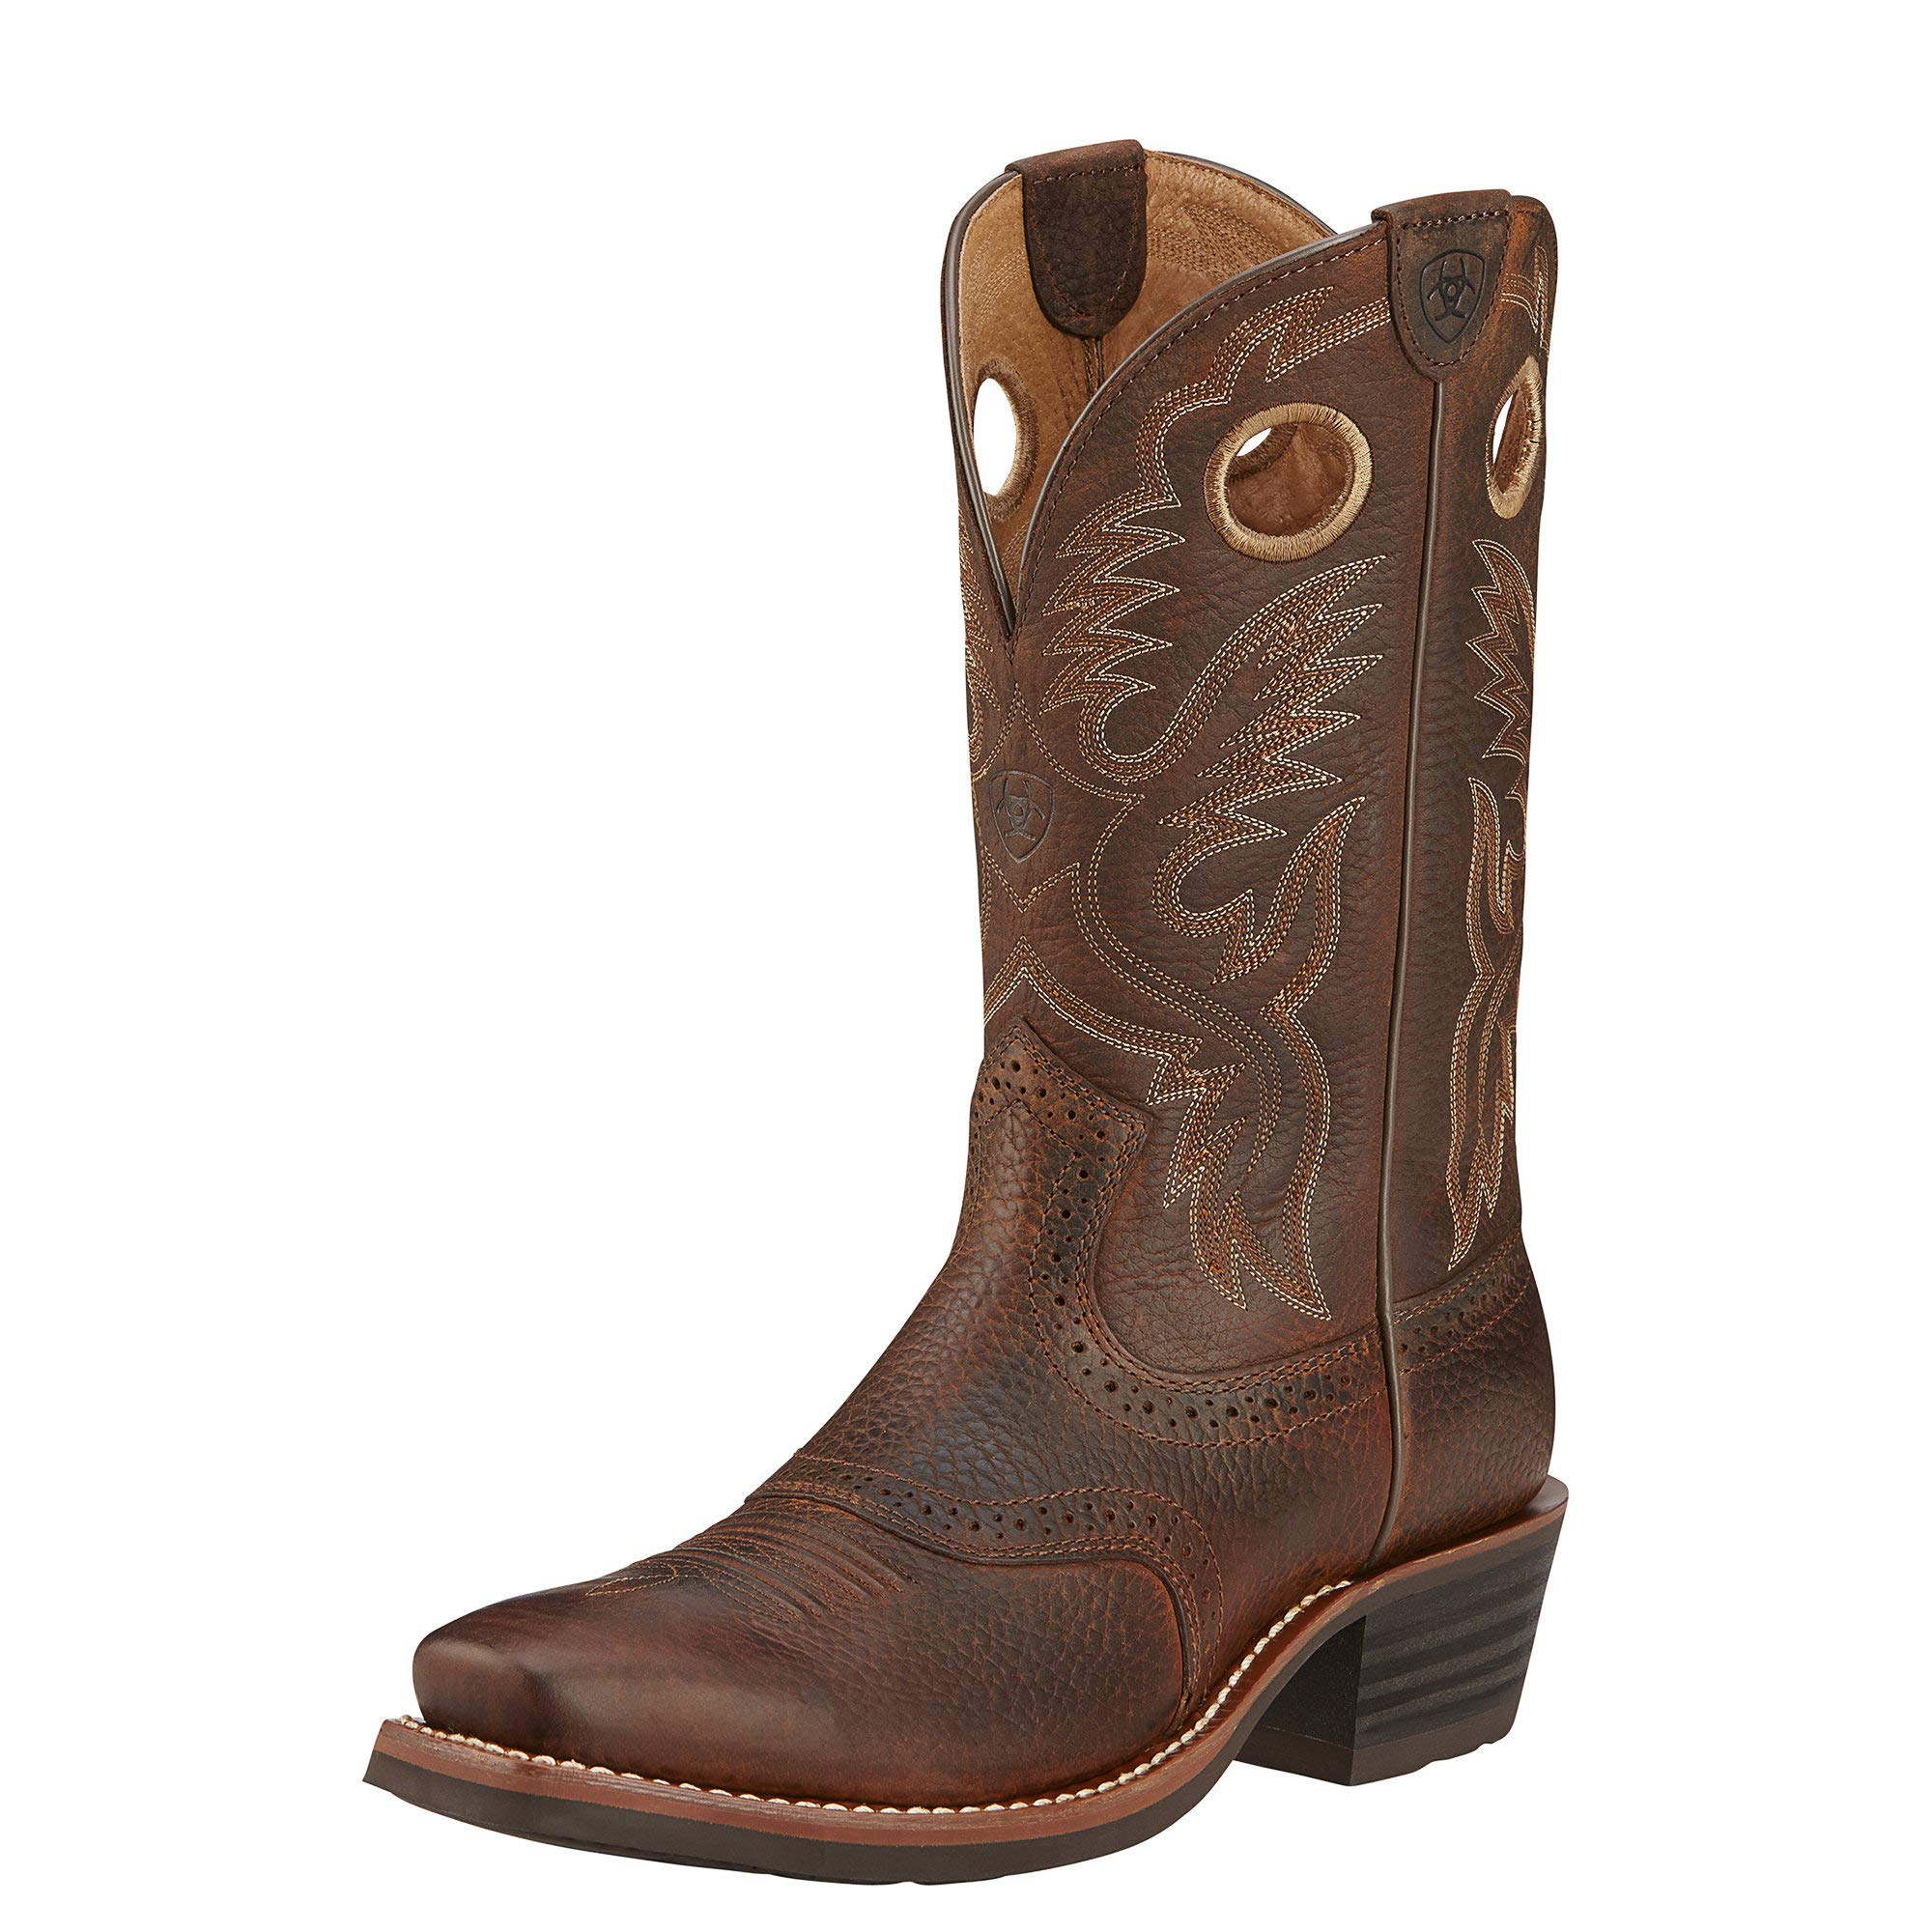 Ariat Men's Heritage Roughstock Western Cowboy Boot, Brown Oiled Rowdy, 8.5 D